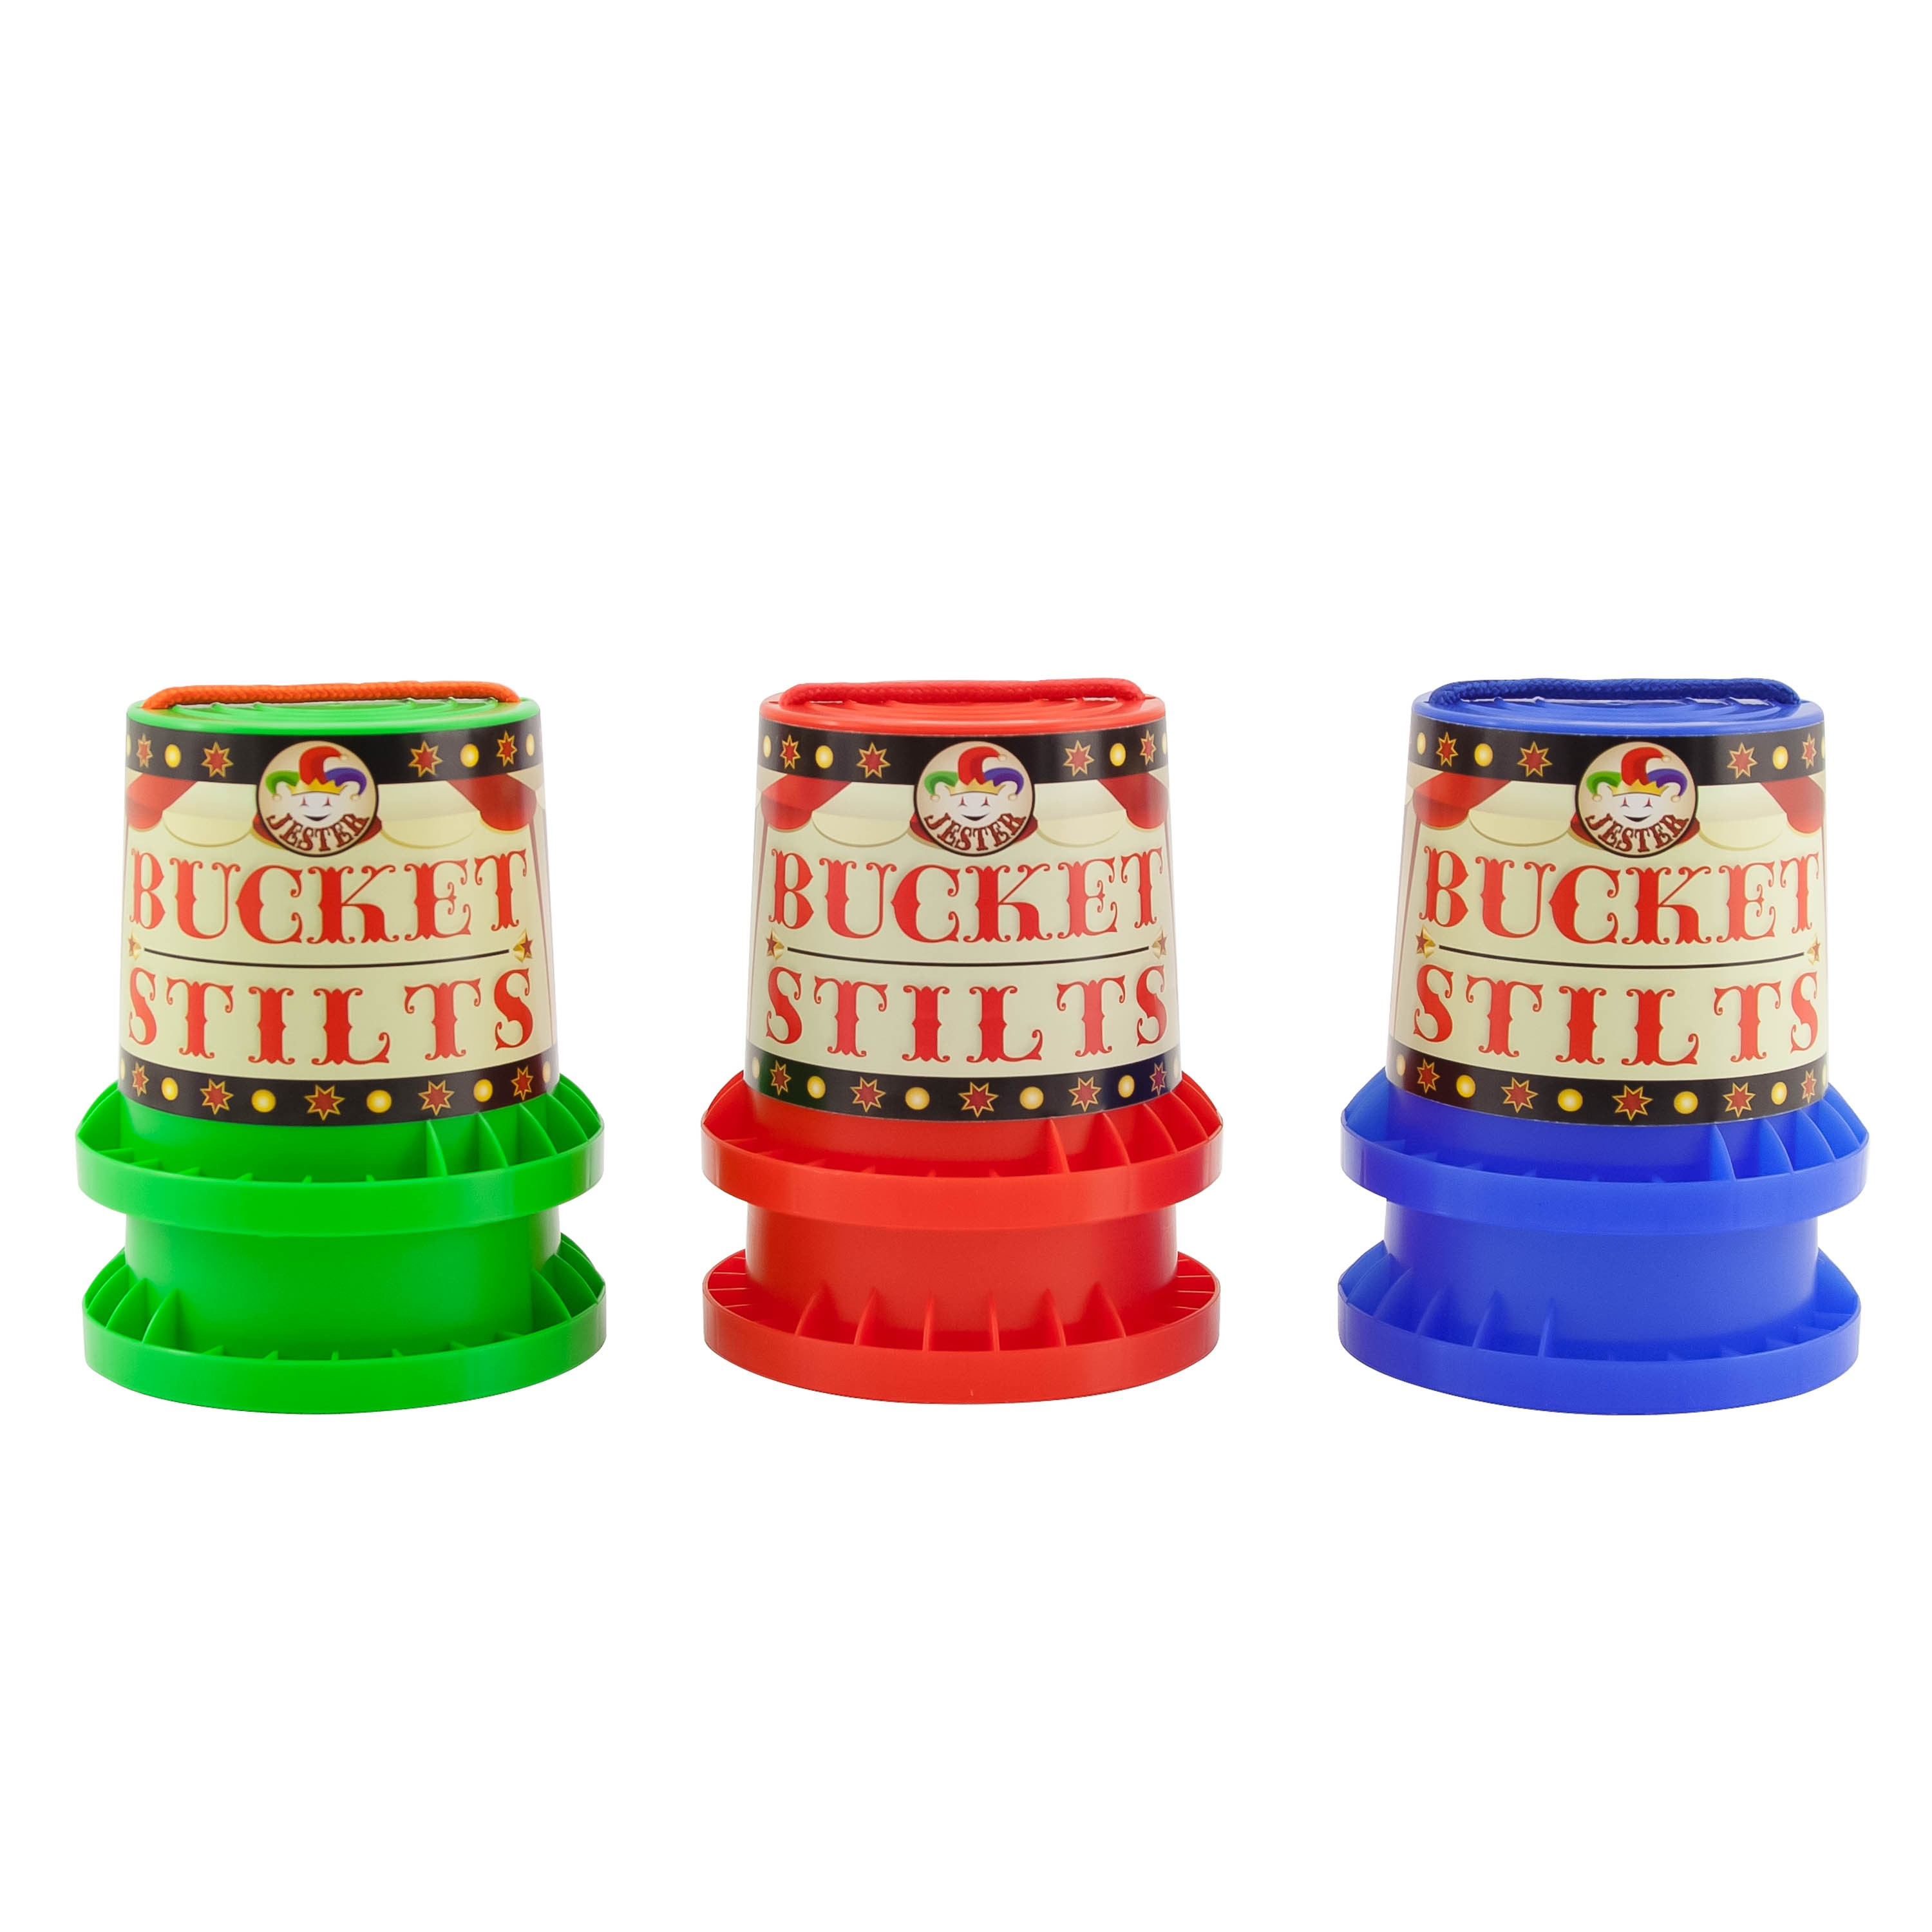 Indy Bucket Stilts - Various Colours Available